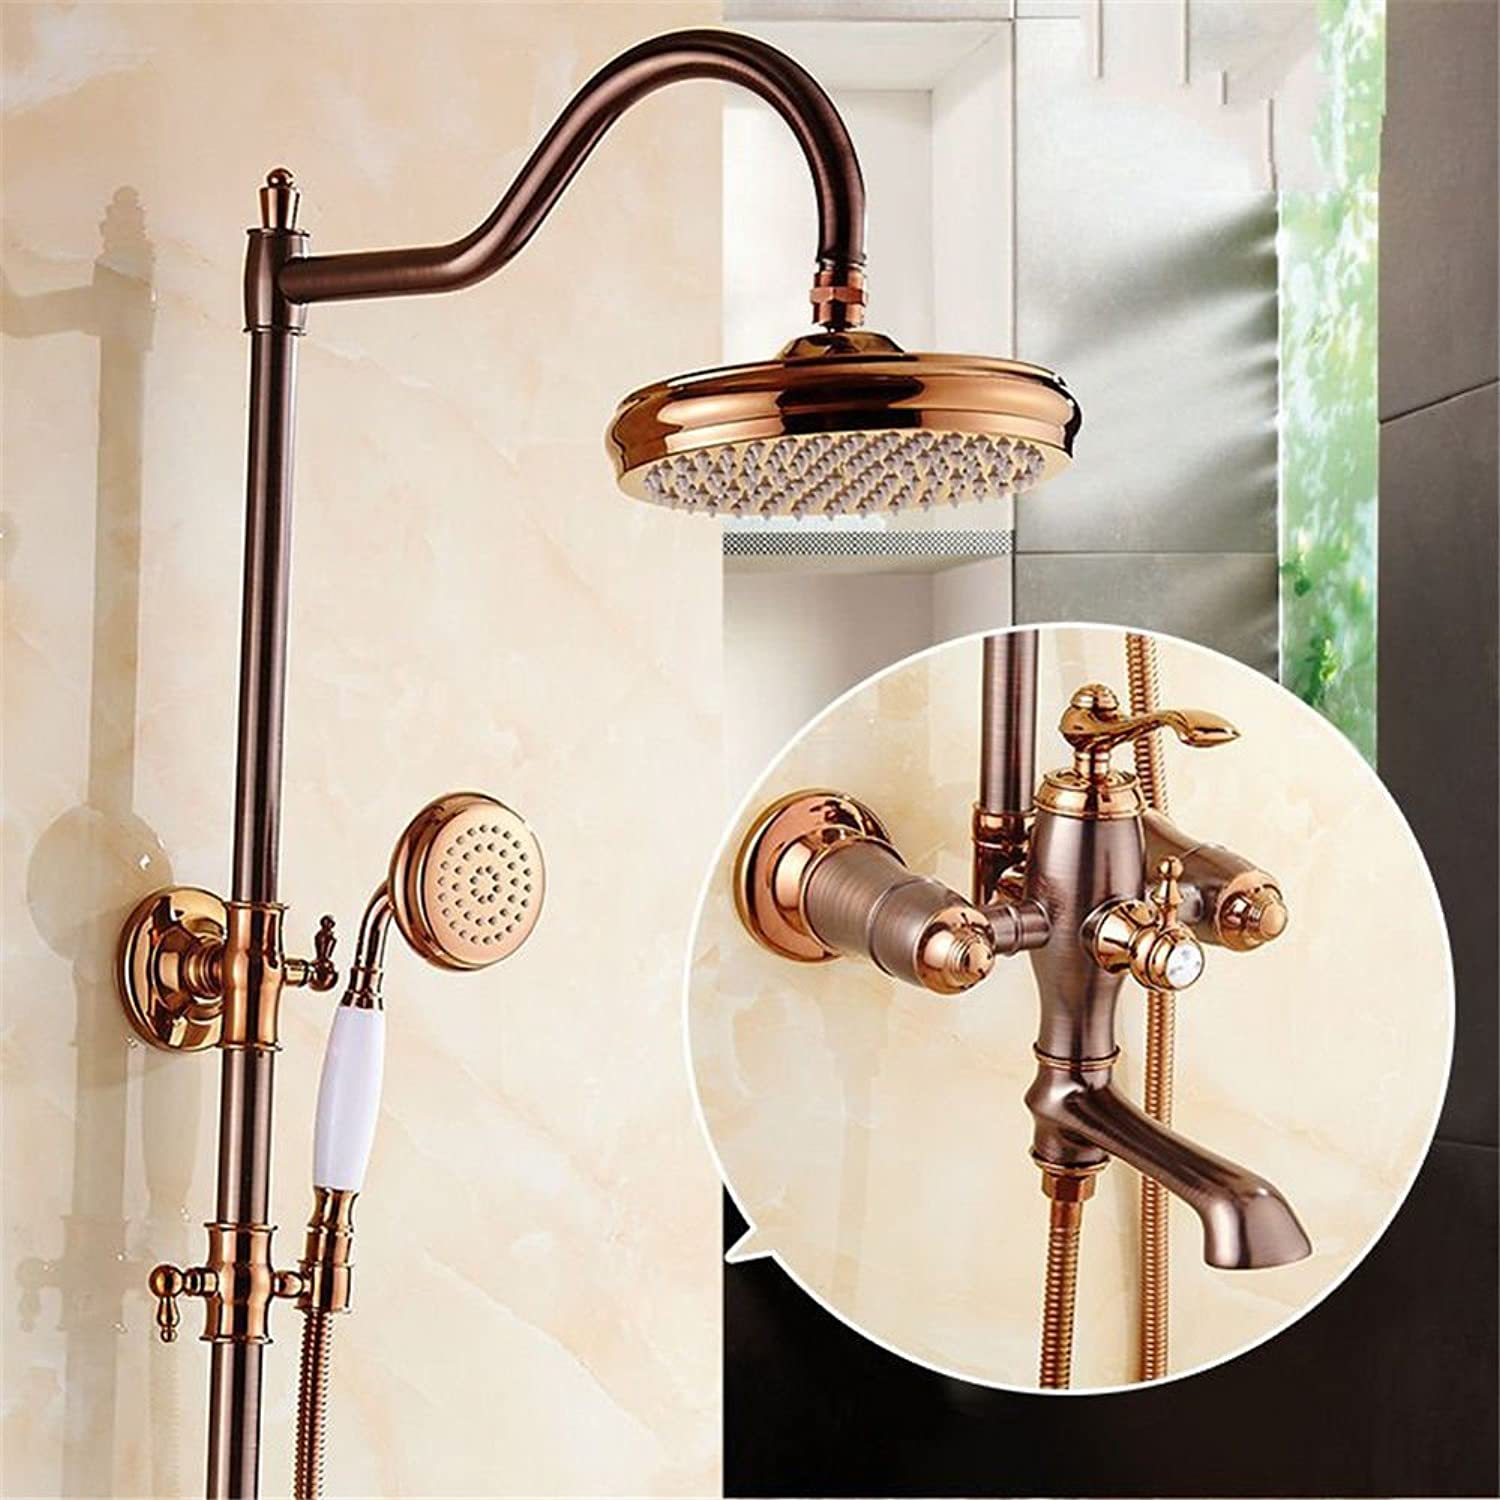 Gyps Faucet Basin Mixer Tap Waterfall Faucet Antique Bathroom Mixer Bar Mixer Shower Set Tap antique bathroom faucet Natural jade shower shower set pink gold brown antique-brass hot and cold shower fa